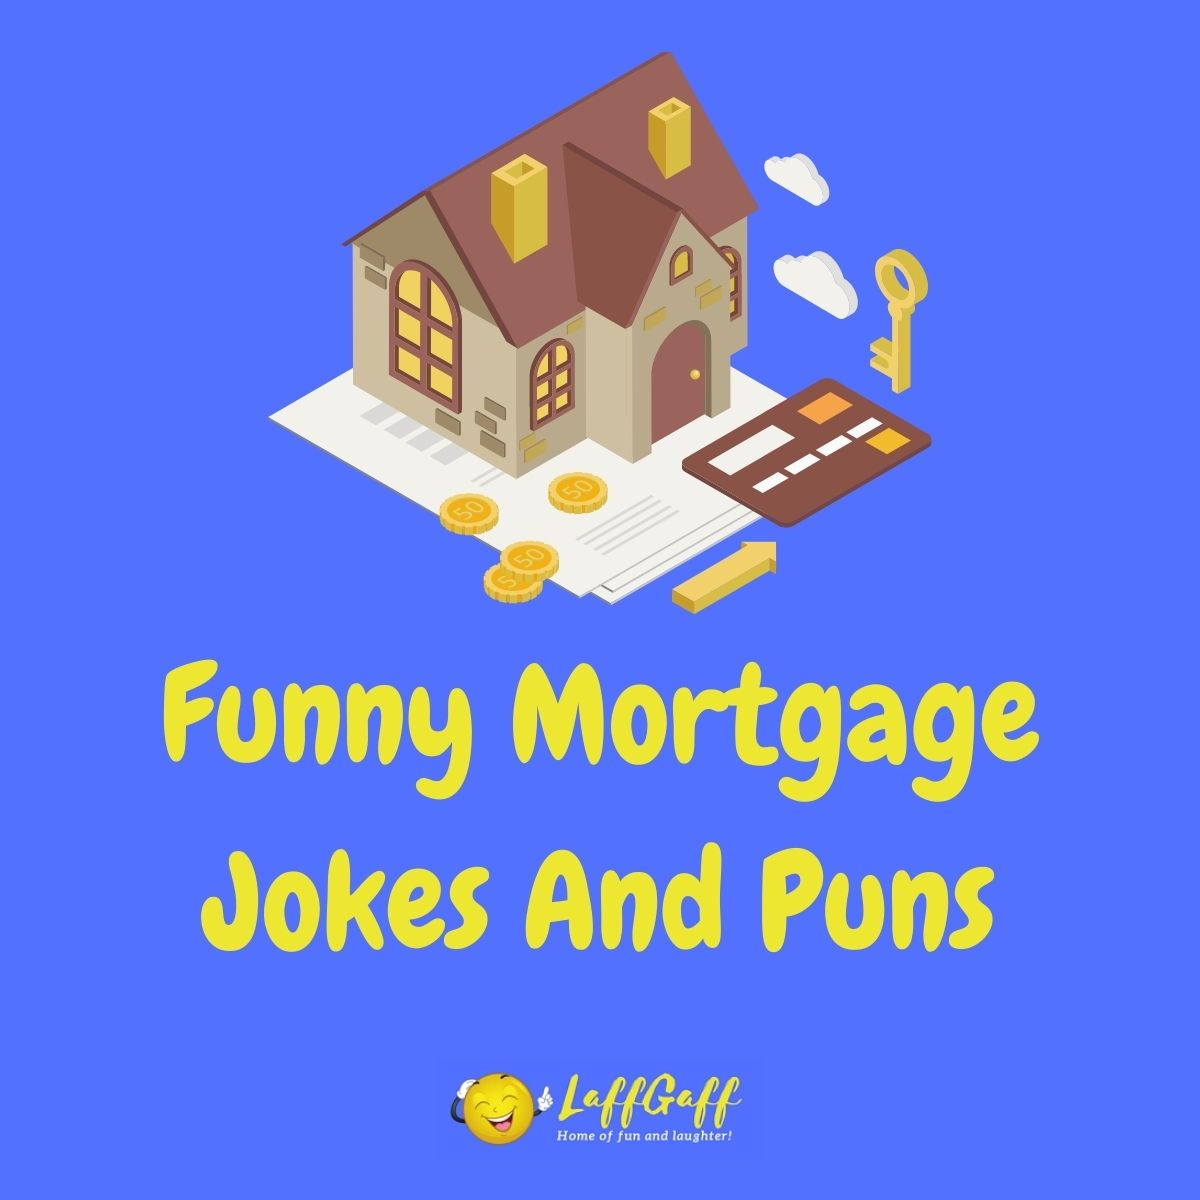 Featured image for a page of funny mortgage jokes and puns.